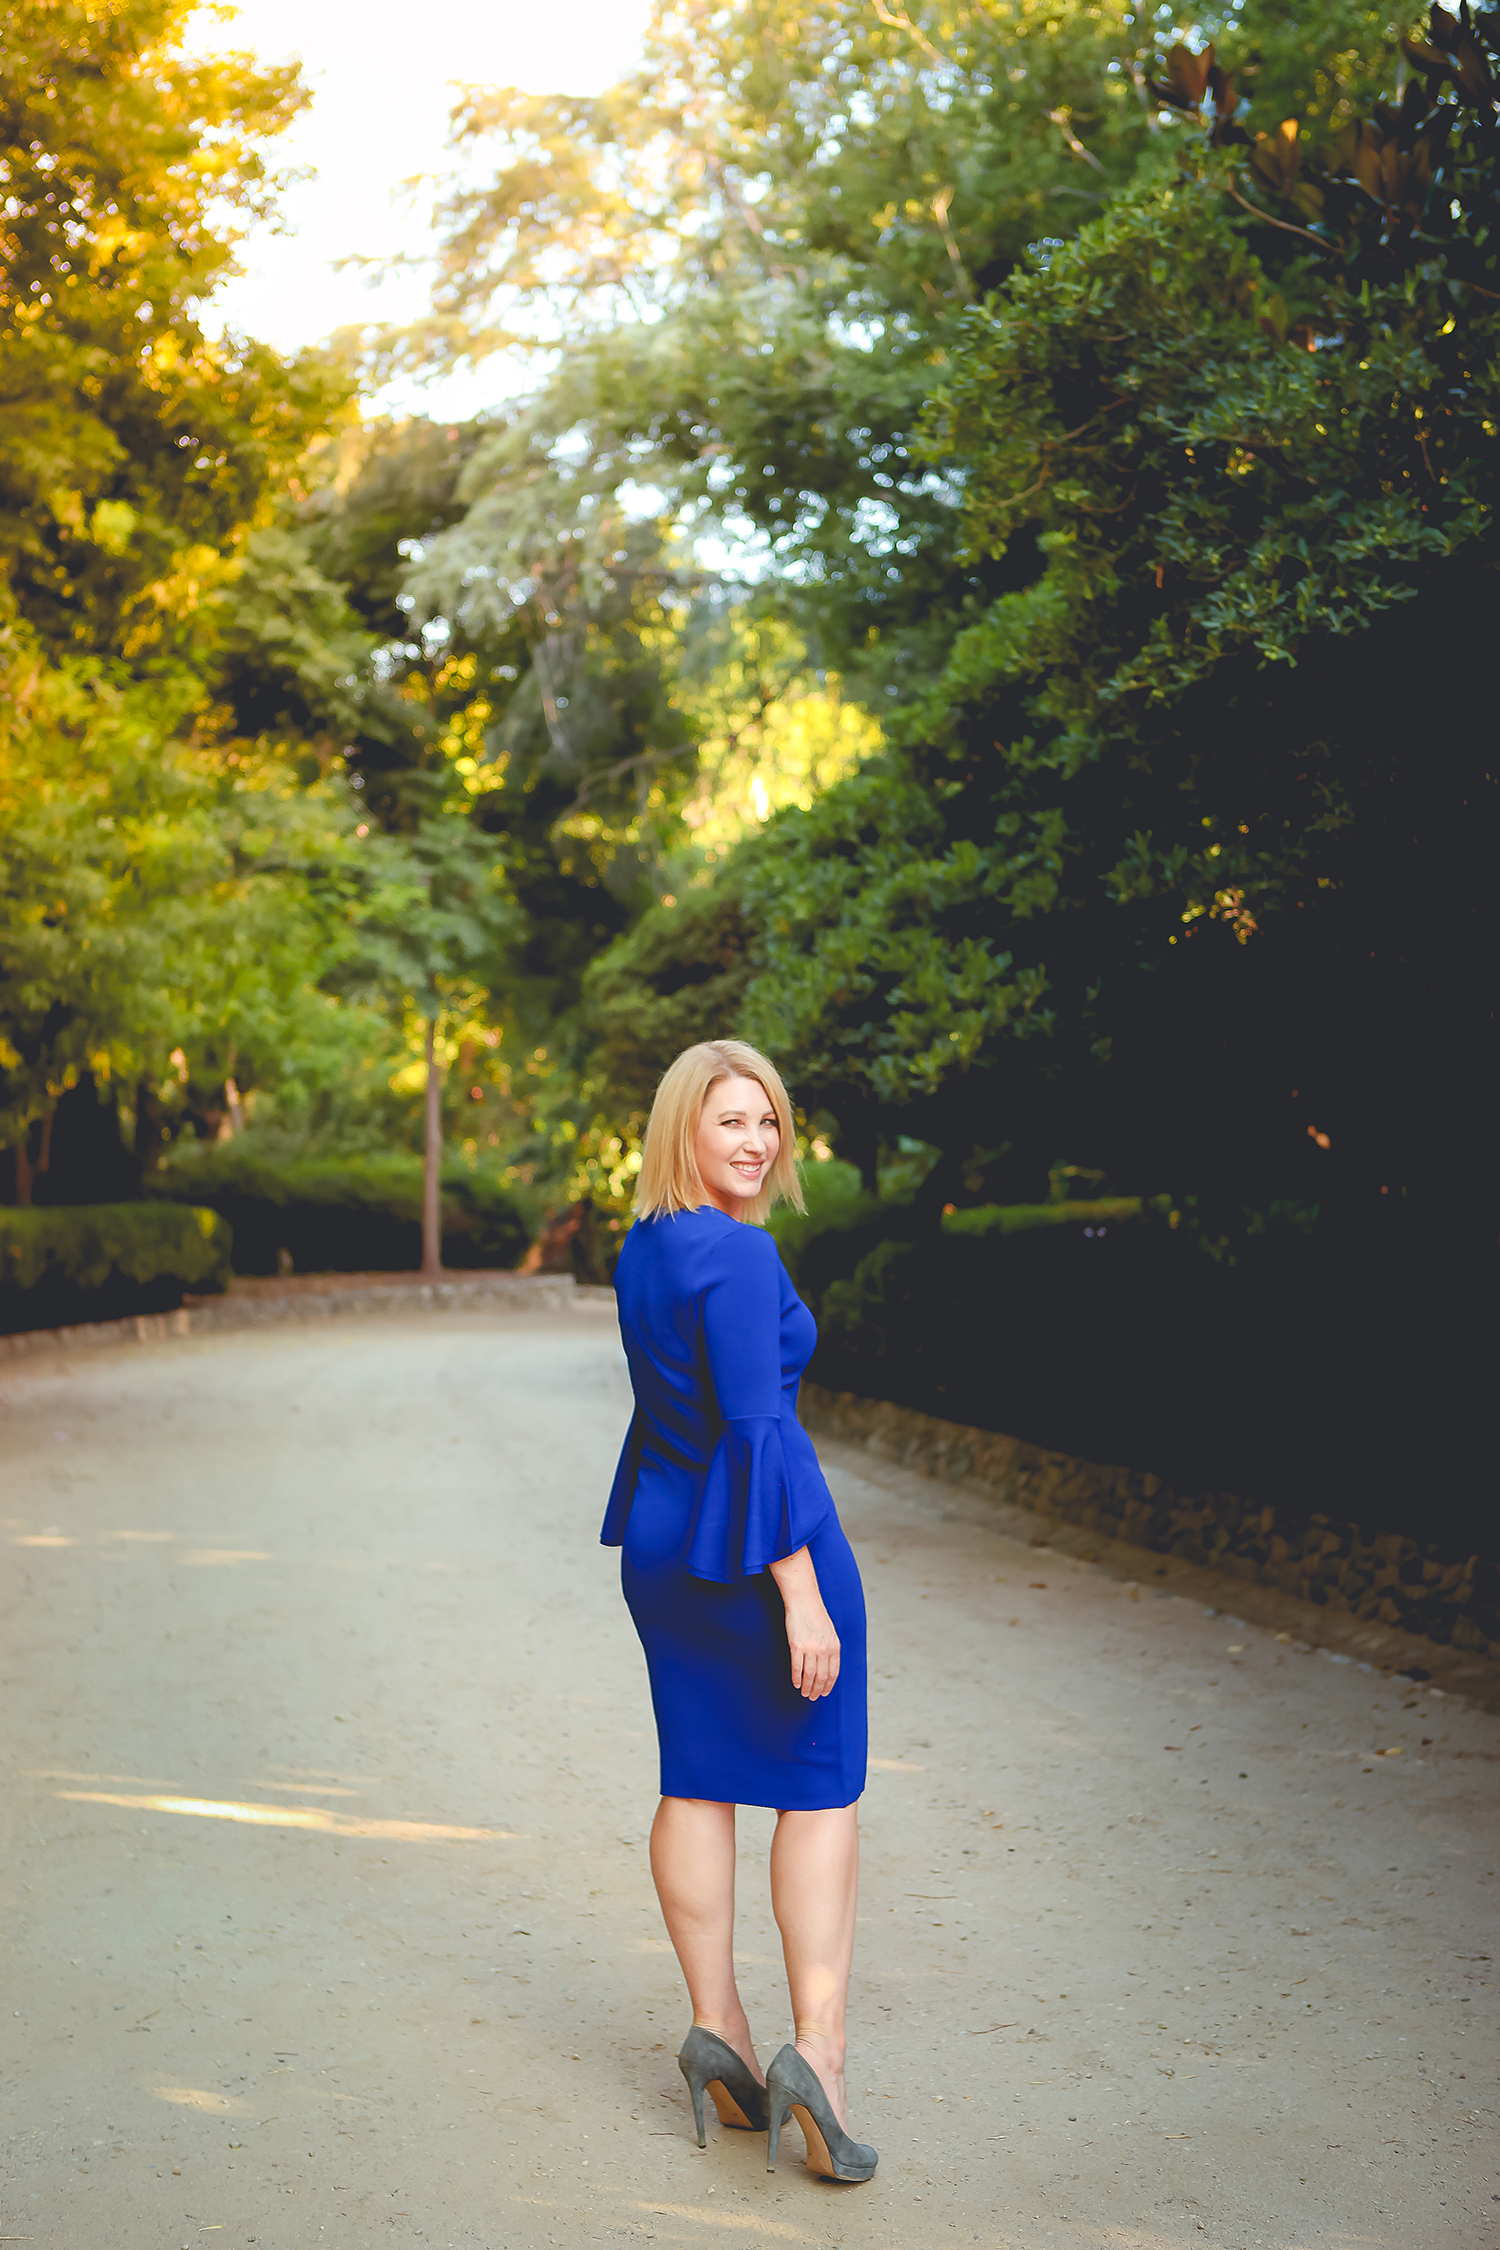 Trunk Club Review August 2017: check out these fall outfits staples......a blue sheath dress, peep toe booties, t shirt dress and a great graphic sweater!